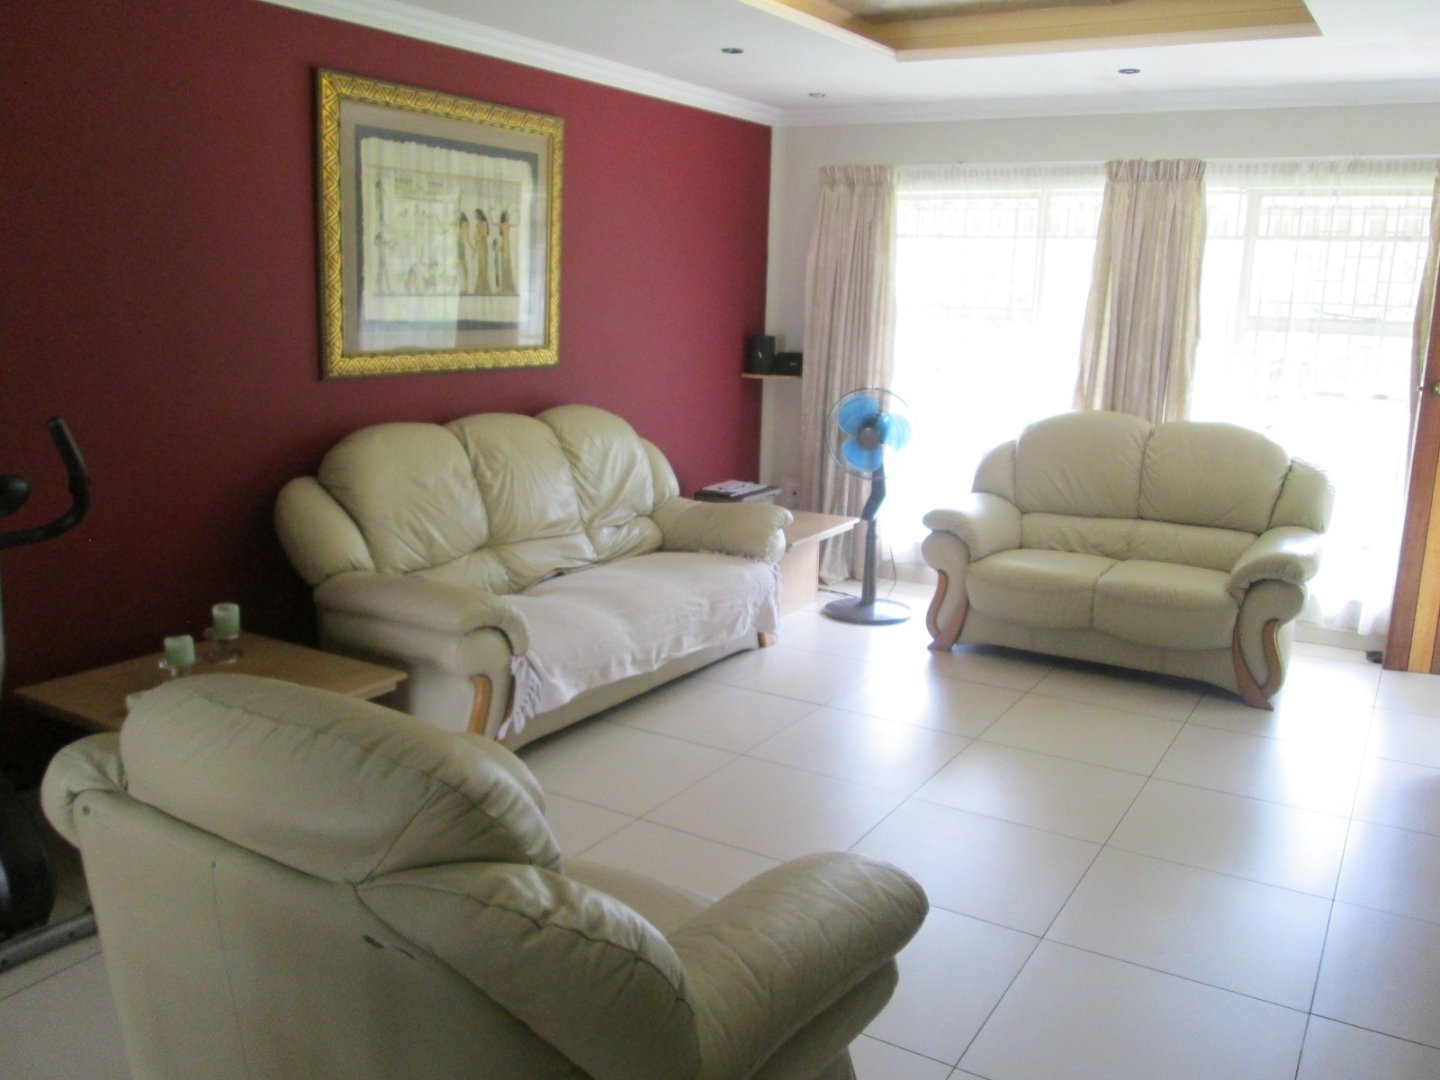 Verwoerdpark property for sale. Ref No: 13585676. Picture no 3